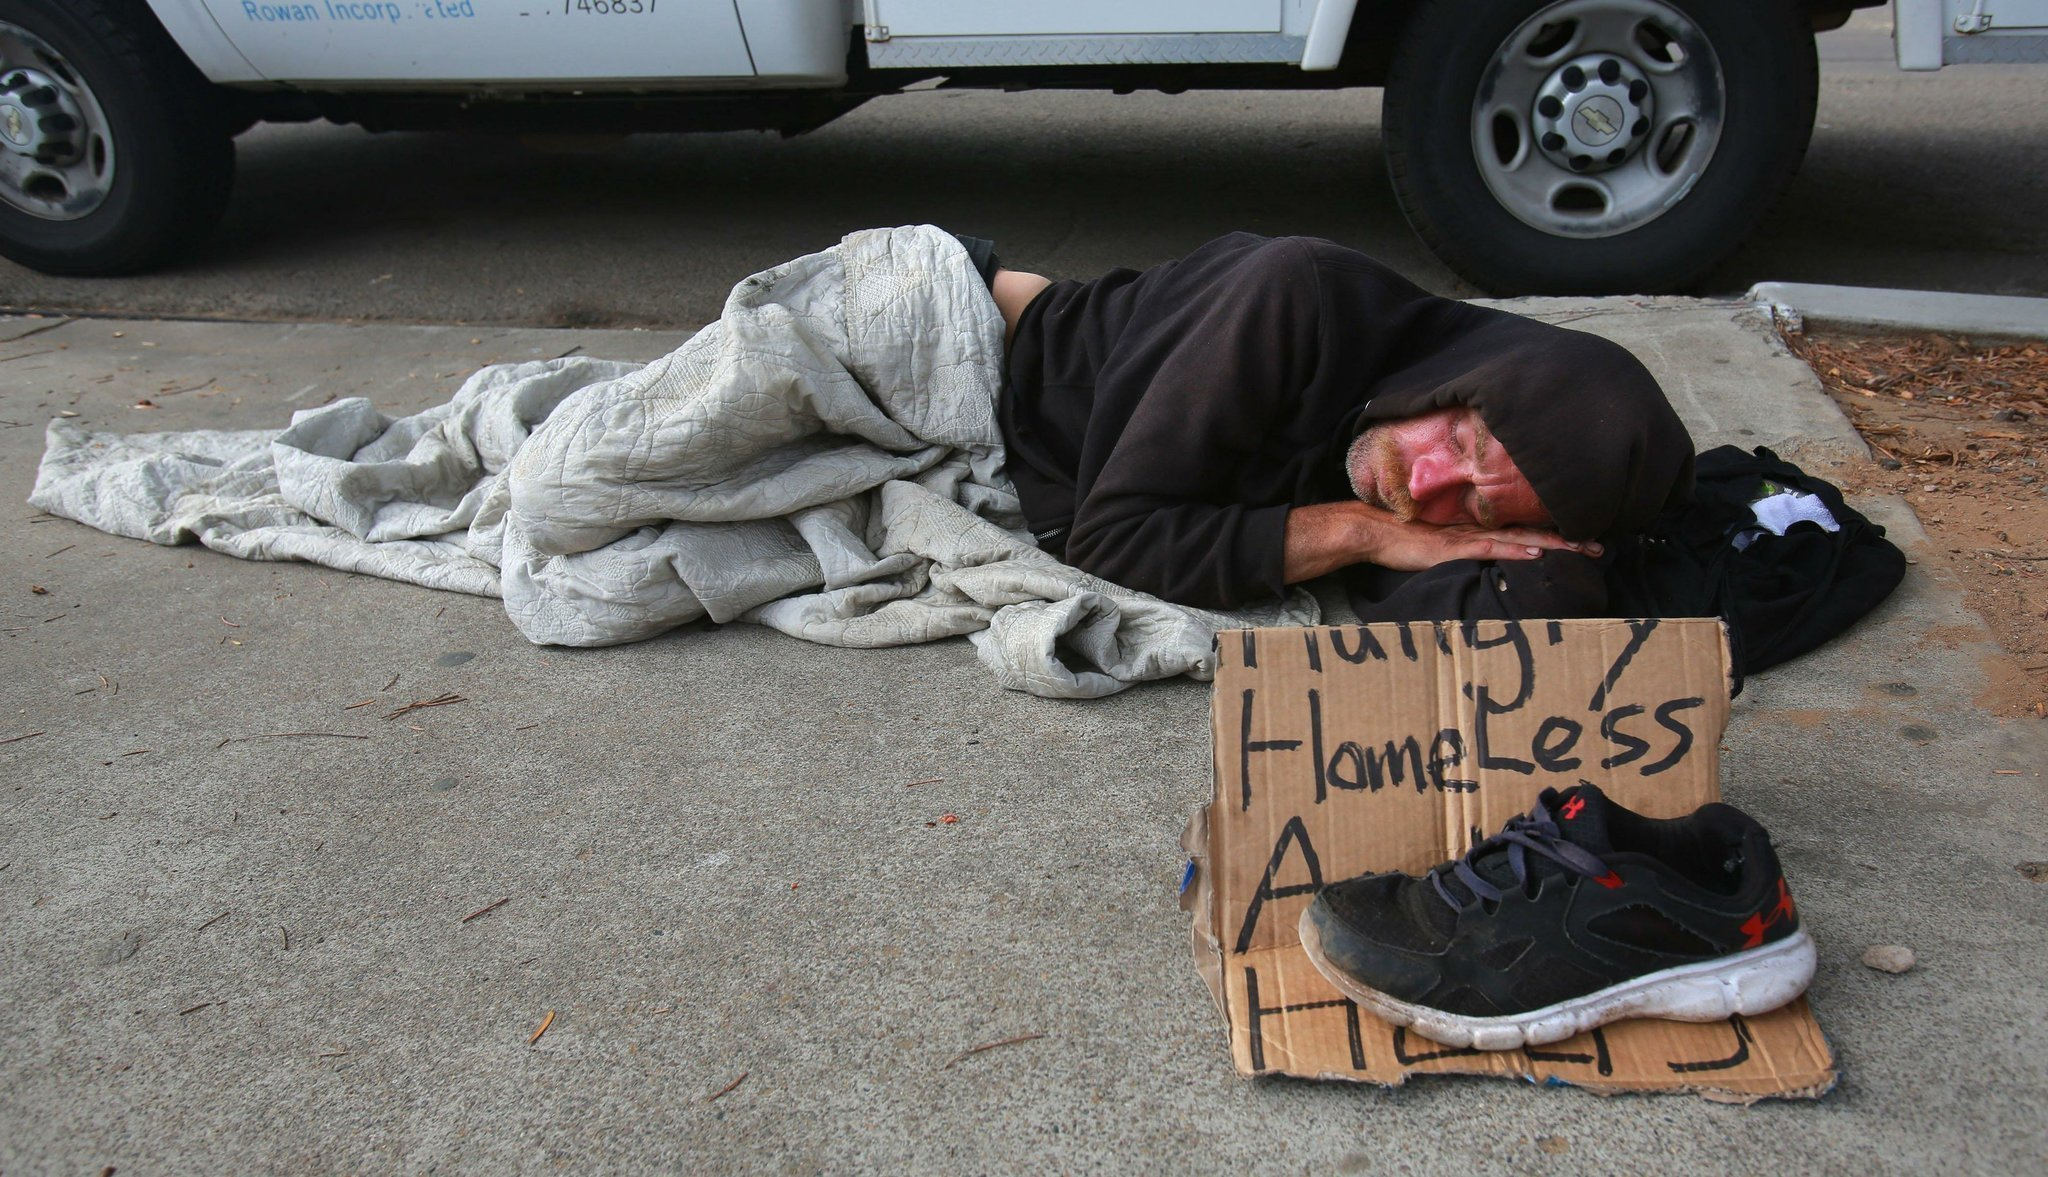 homeless in san diego Client city of san diego challenge a homeless count taken in january 2017 found more than 5,600 people sleeping on the streets in san diego, with many living along the edges of downtown in hand-built encampments and tents lined along city blocks.